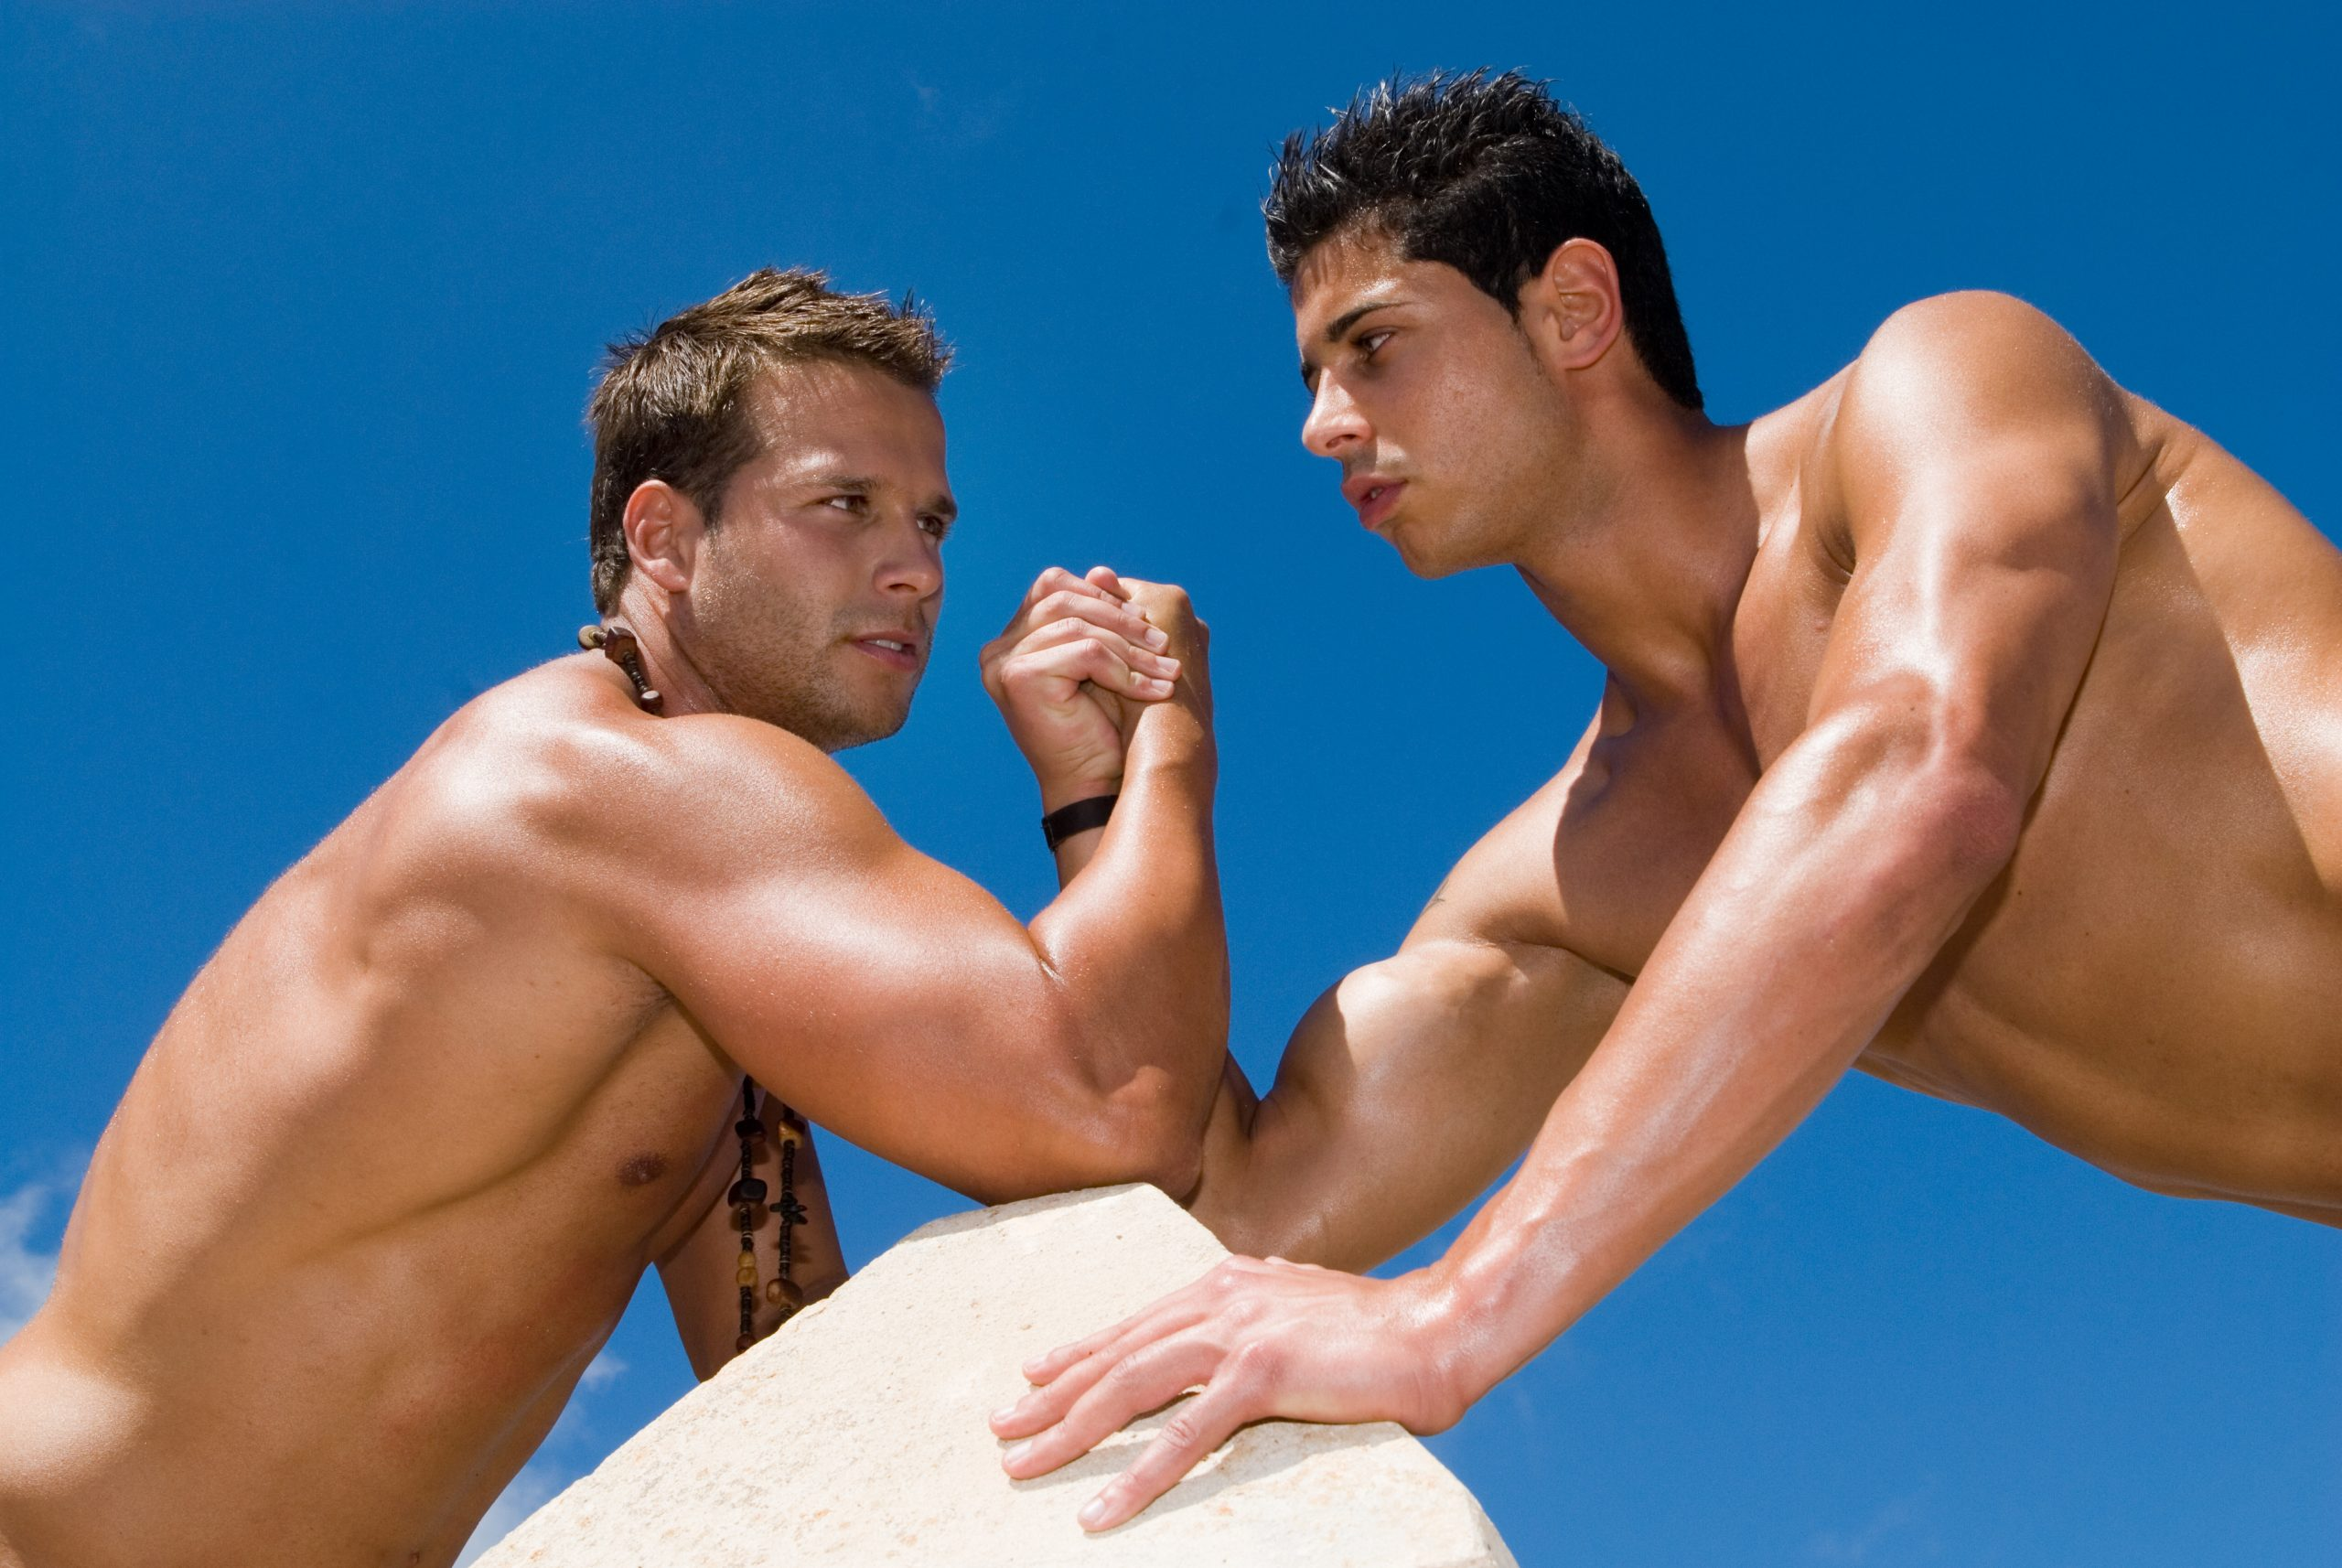 Two gay shirtless men arm wrestle each other on a rock against a blue sky.